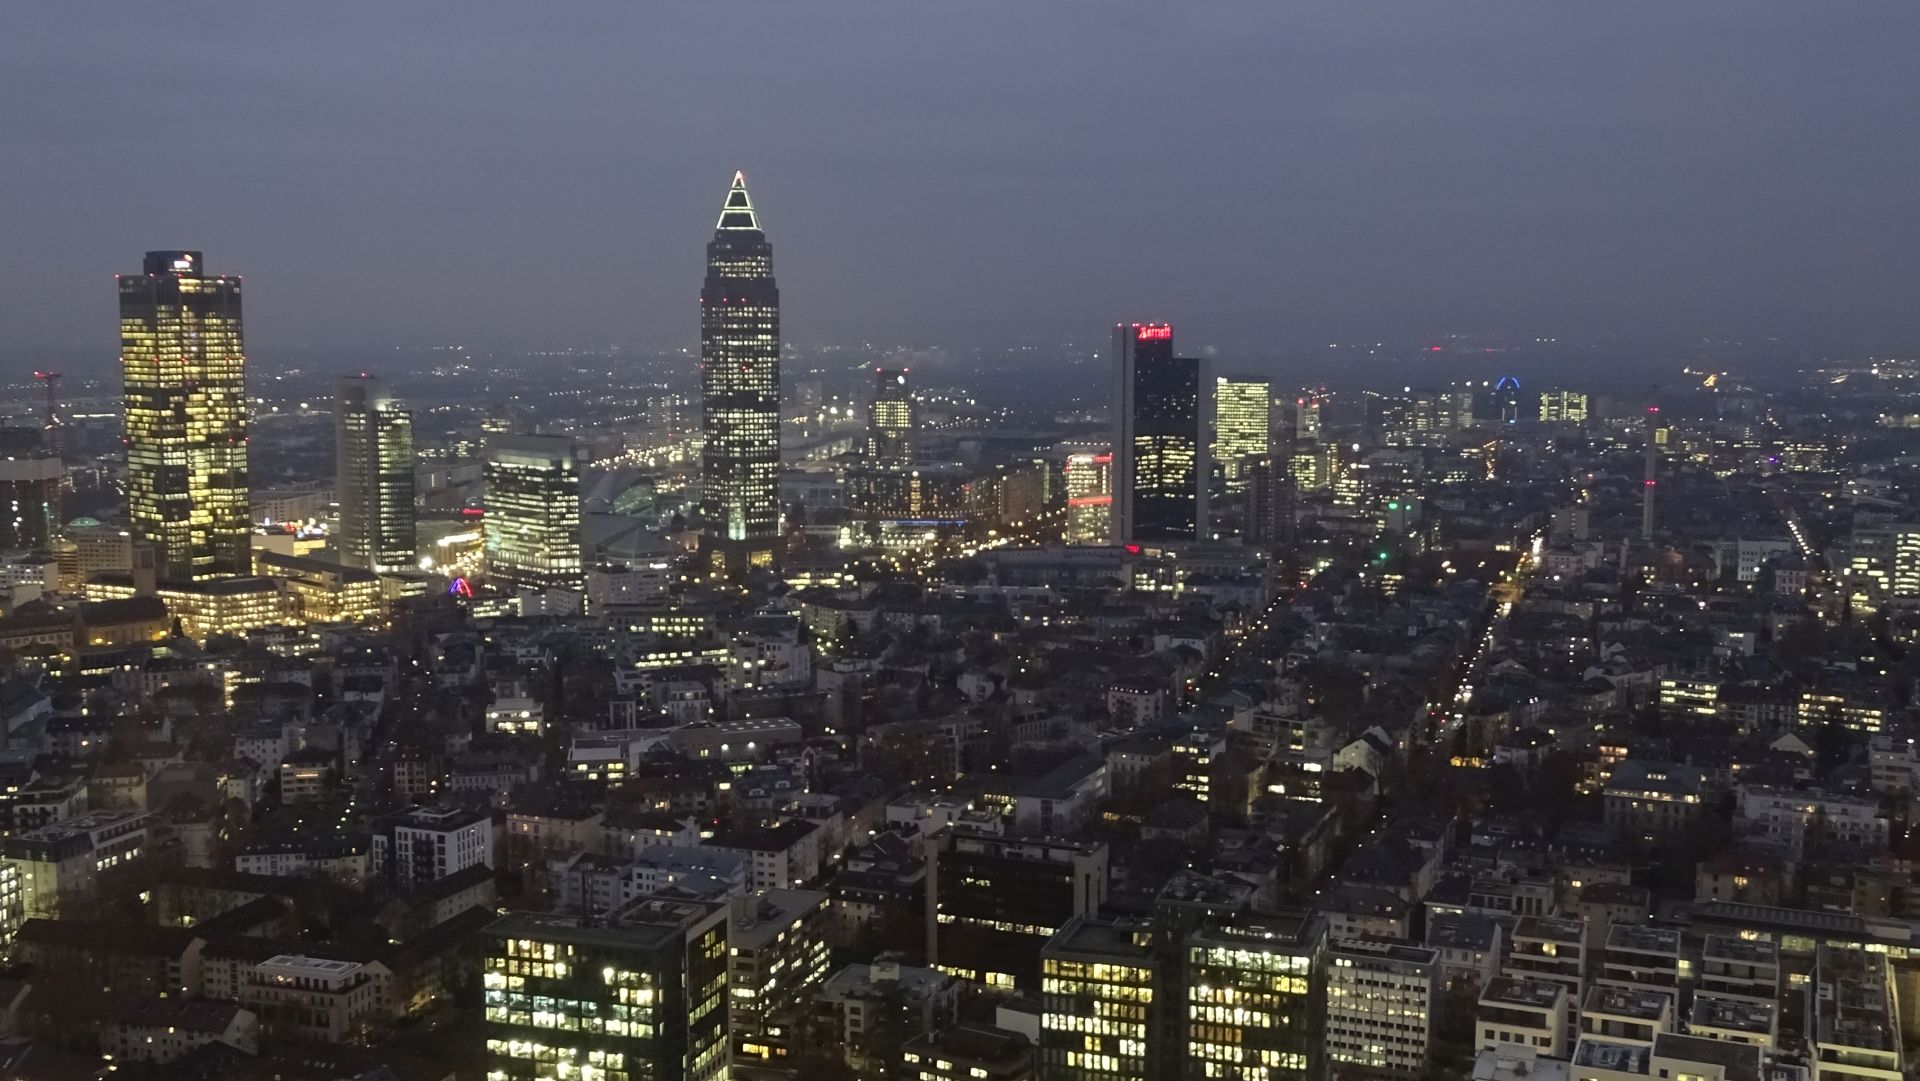 Frankfurt am Main is one of the most important financial centres in Europe